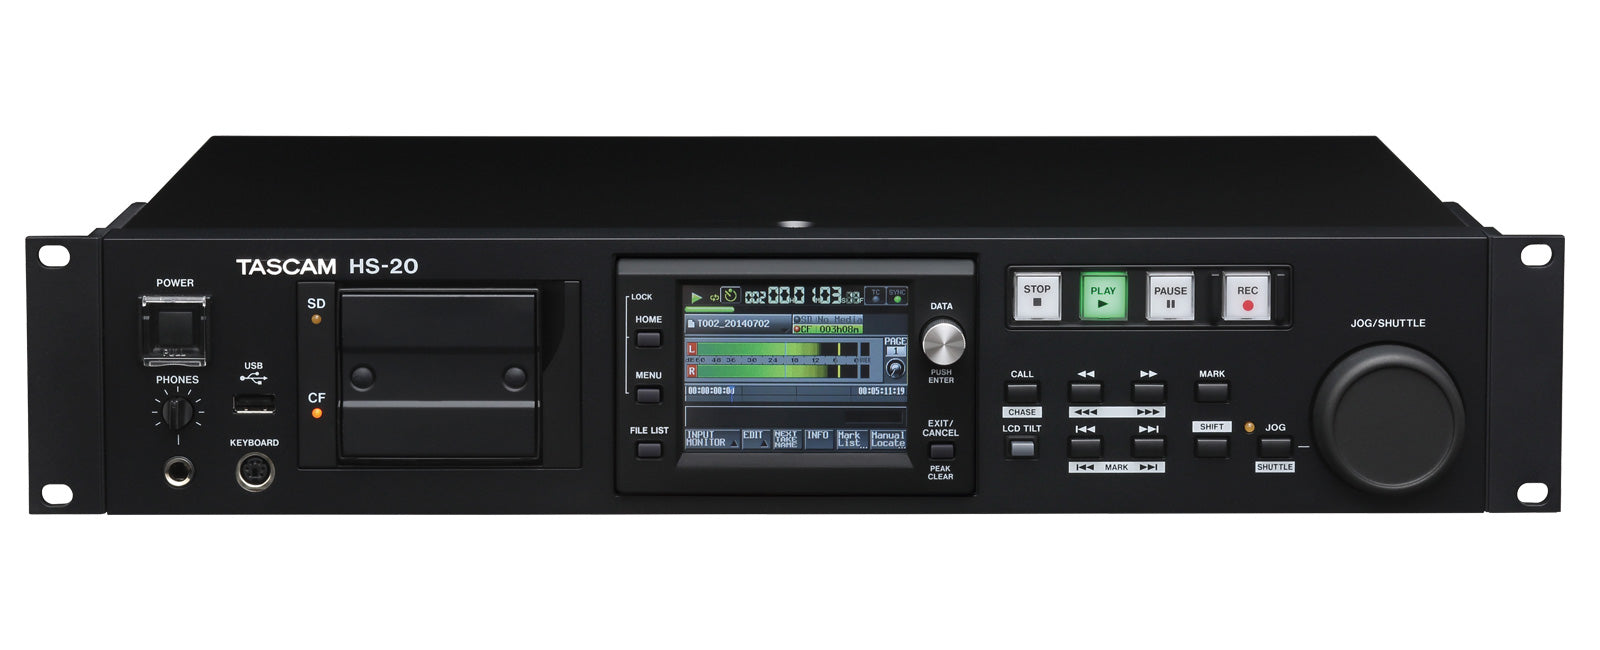 TASCAM HS-20 Contractor Recorder (HS20)